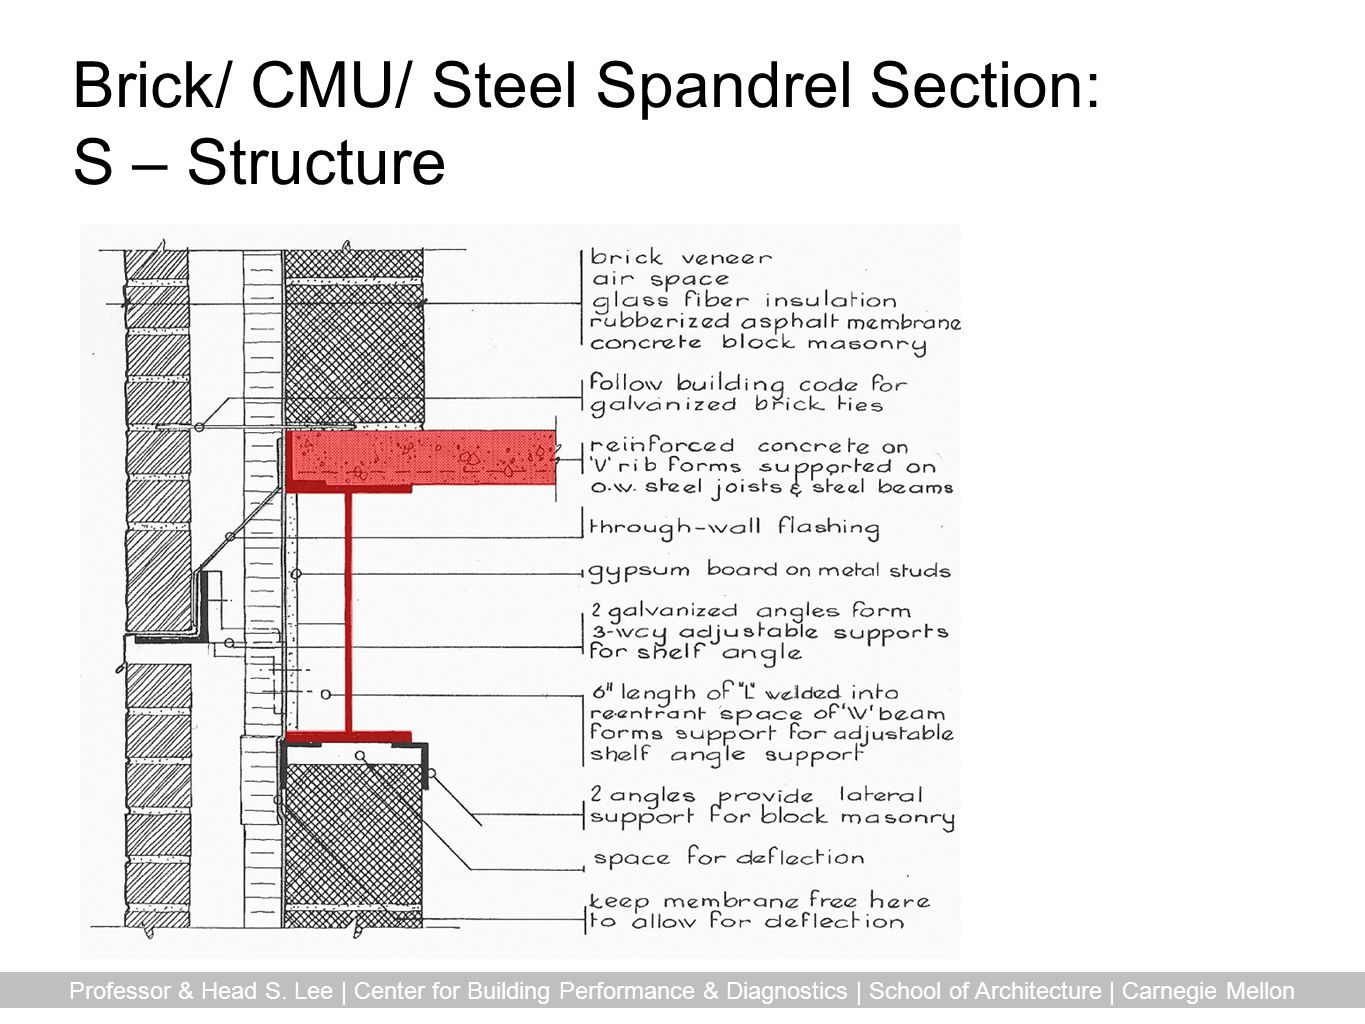 Brick/ CMU/ Steel Spandrel Section: S – Structure